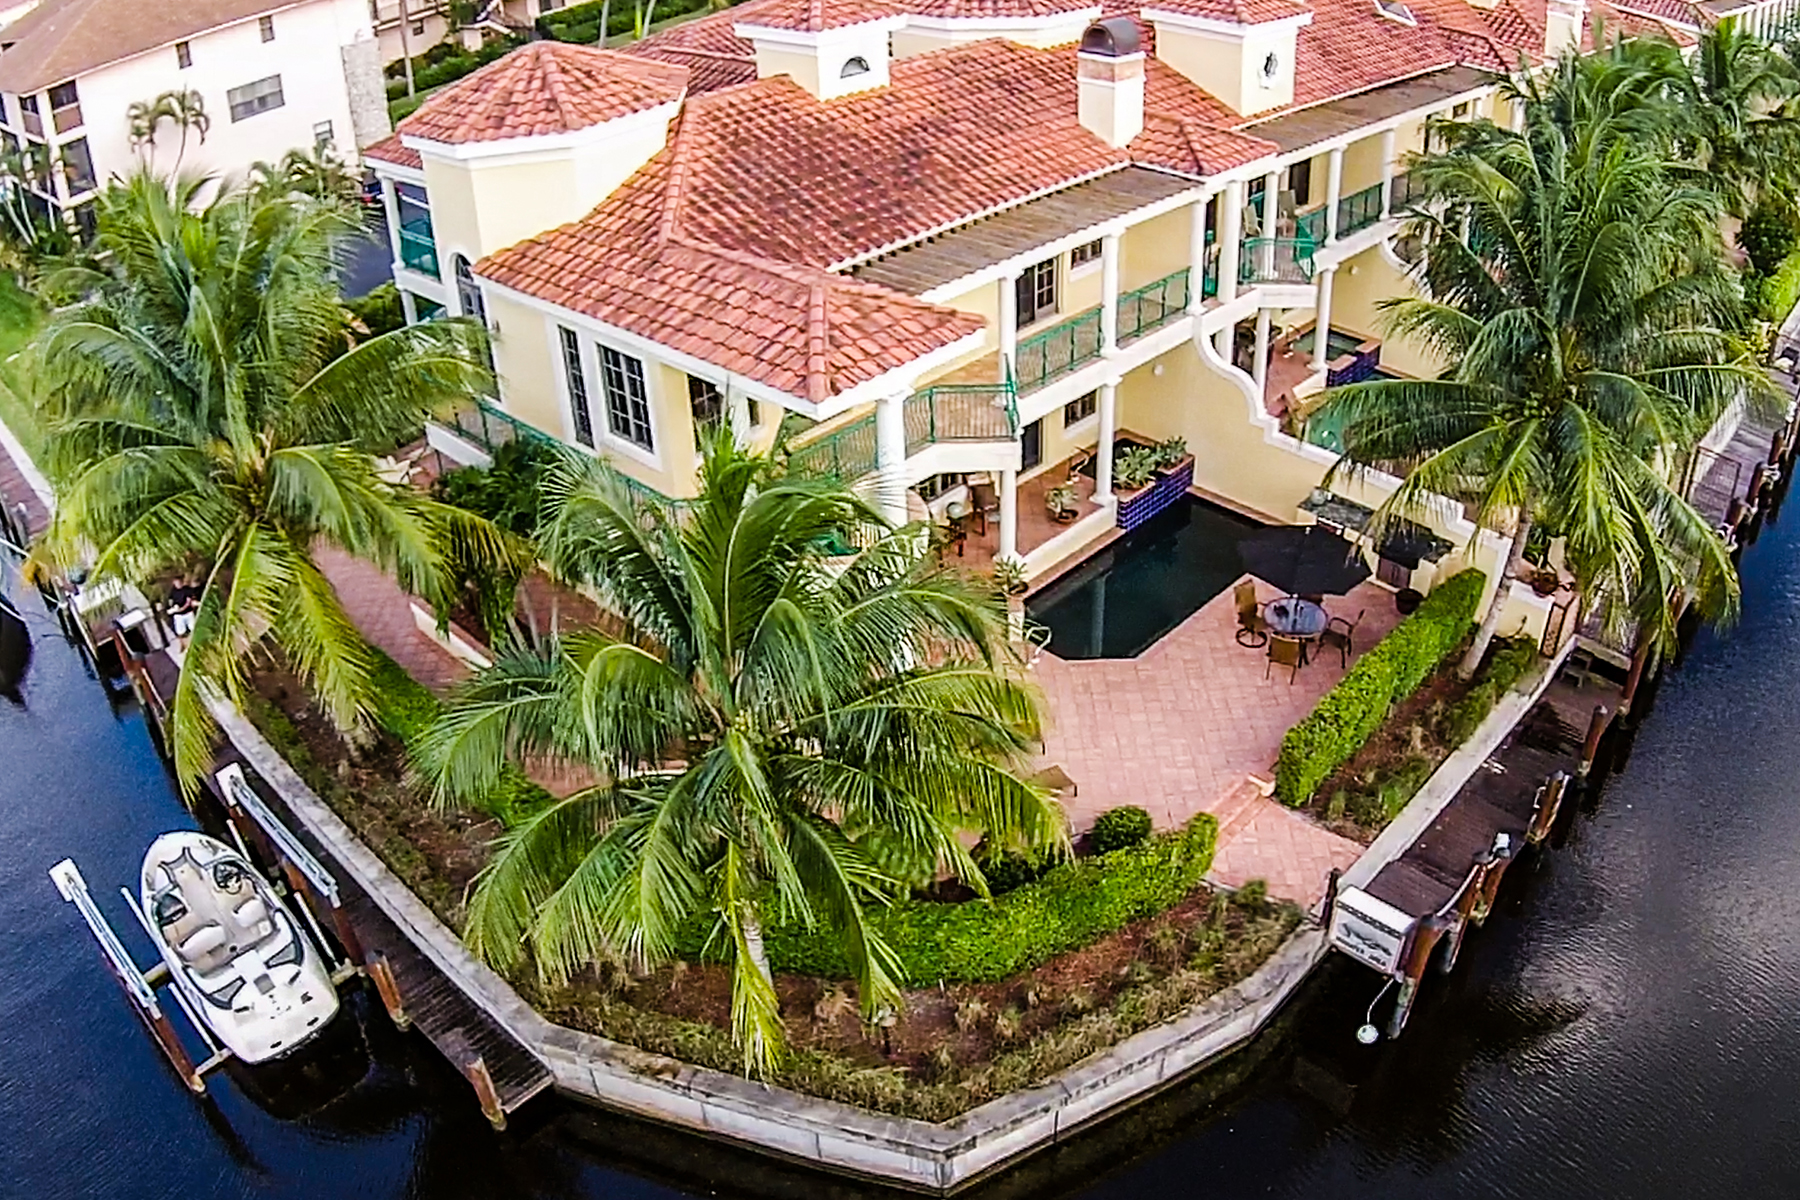 Townhouse for Sale at ROYAL HARBOR 1100 Clam Ct 9, Naples, Florida 34102 United States